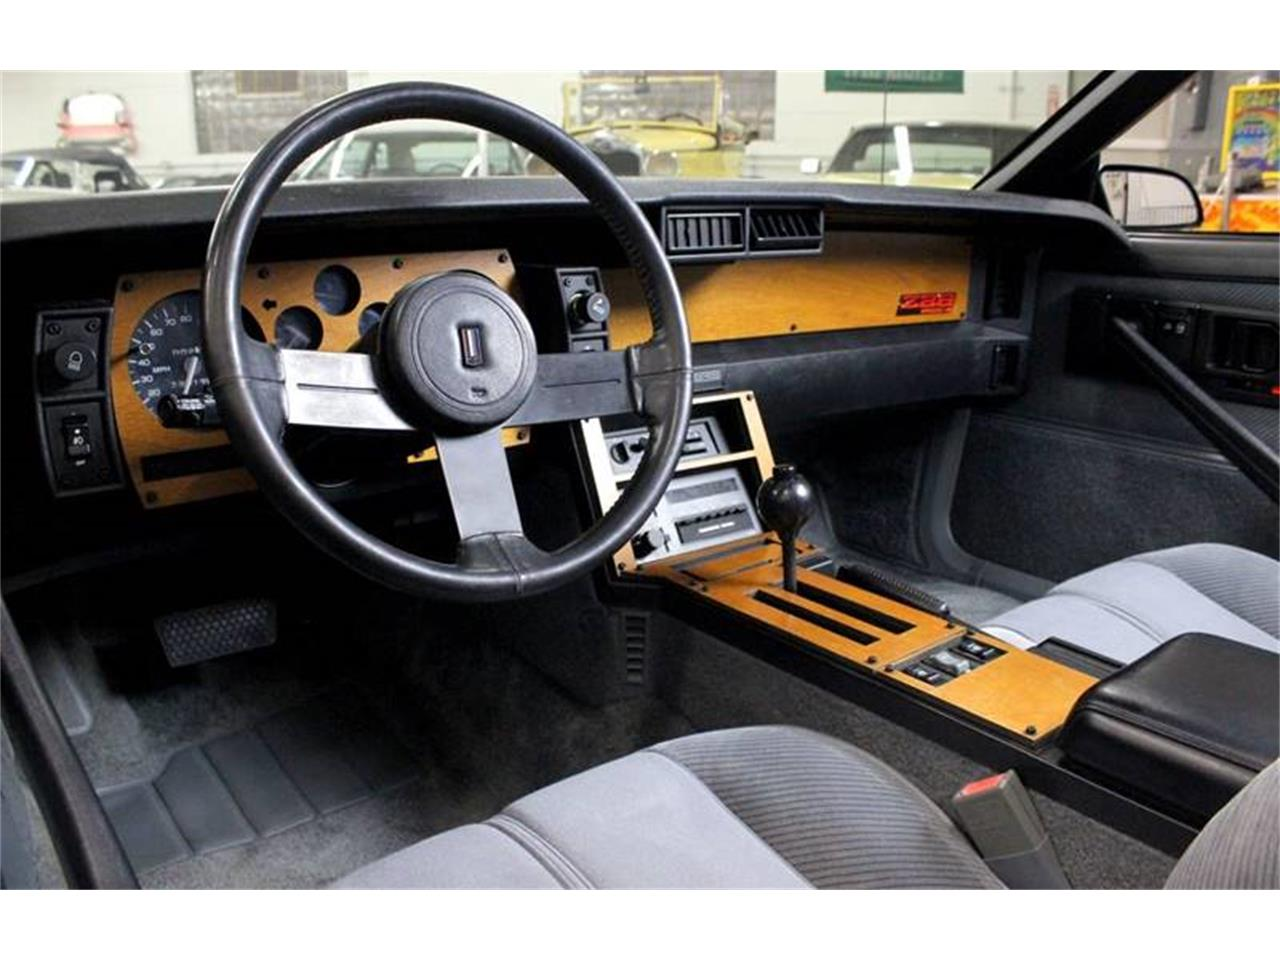 Large Picture of 1985 Chevrolet Camaro located in Chicago Illinois - $18,900.00 - MB2C